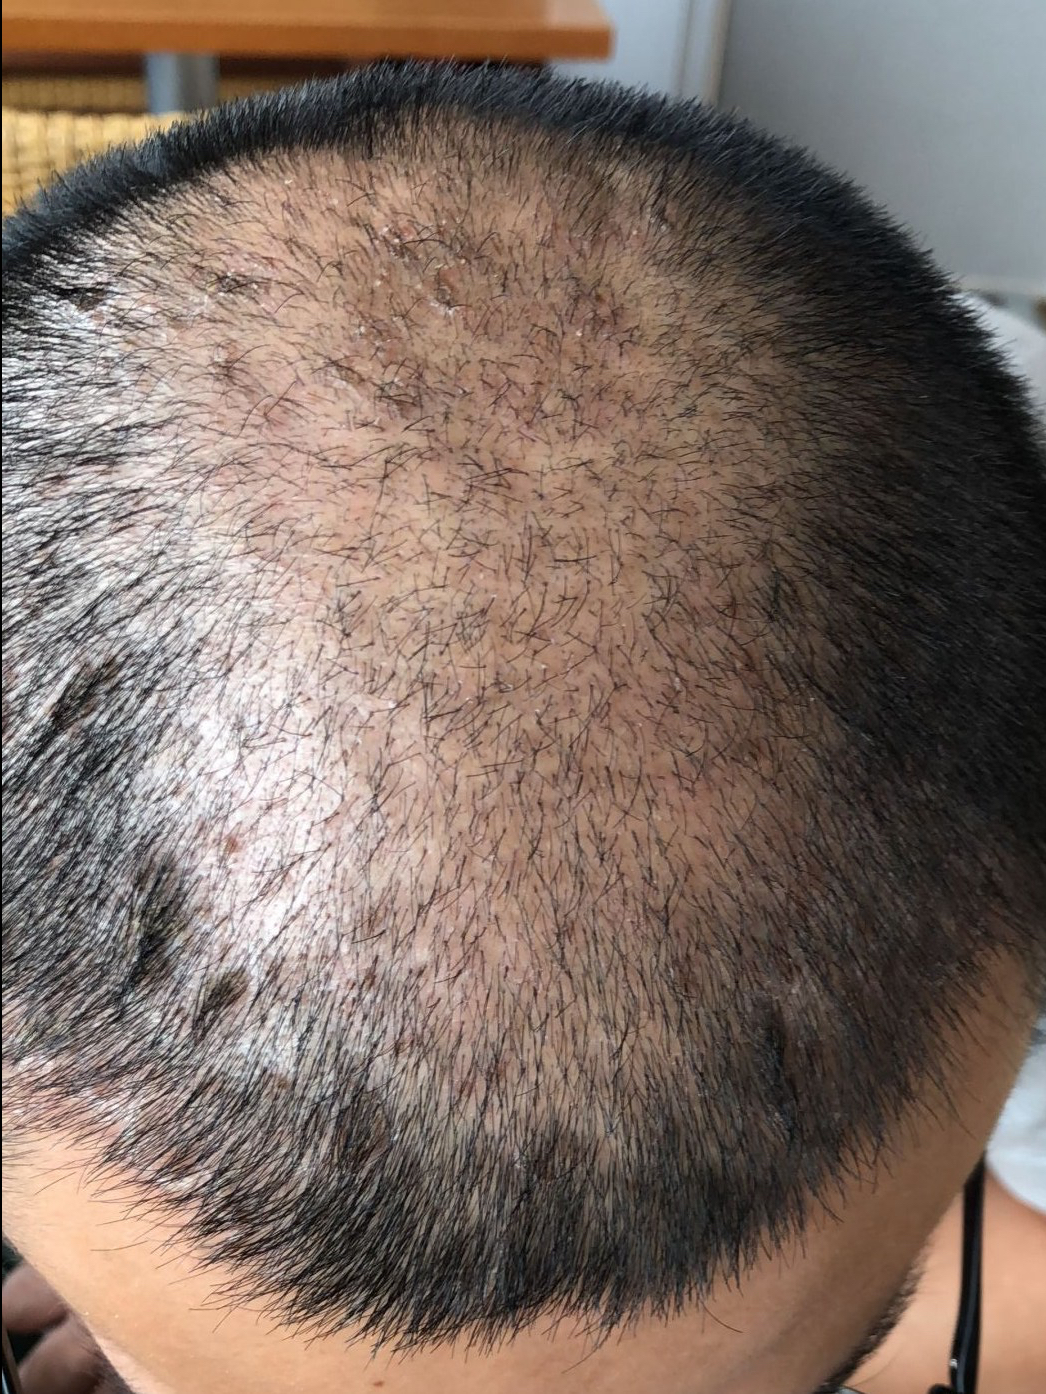 Healing/scabbing after FUE hair transplant surgery